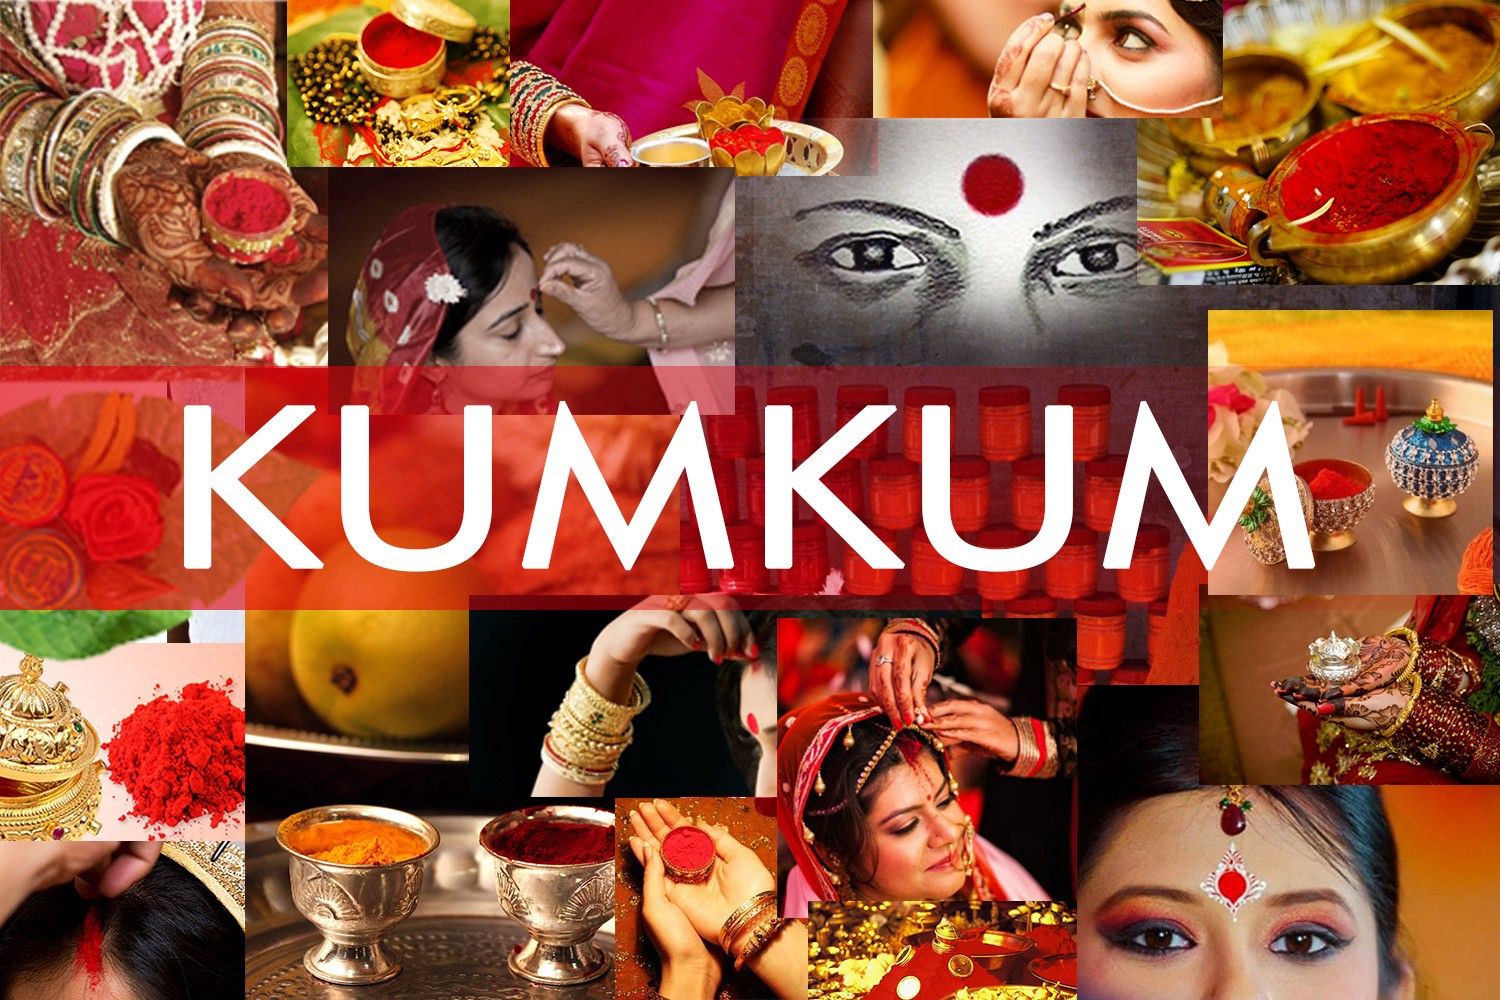 8 essential facts about Kumkum - MyTemple India - Medium